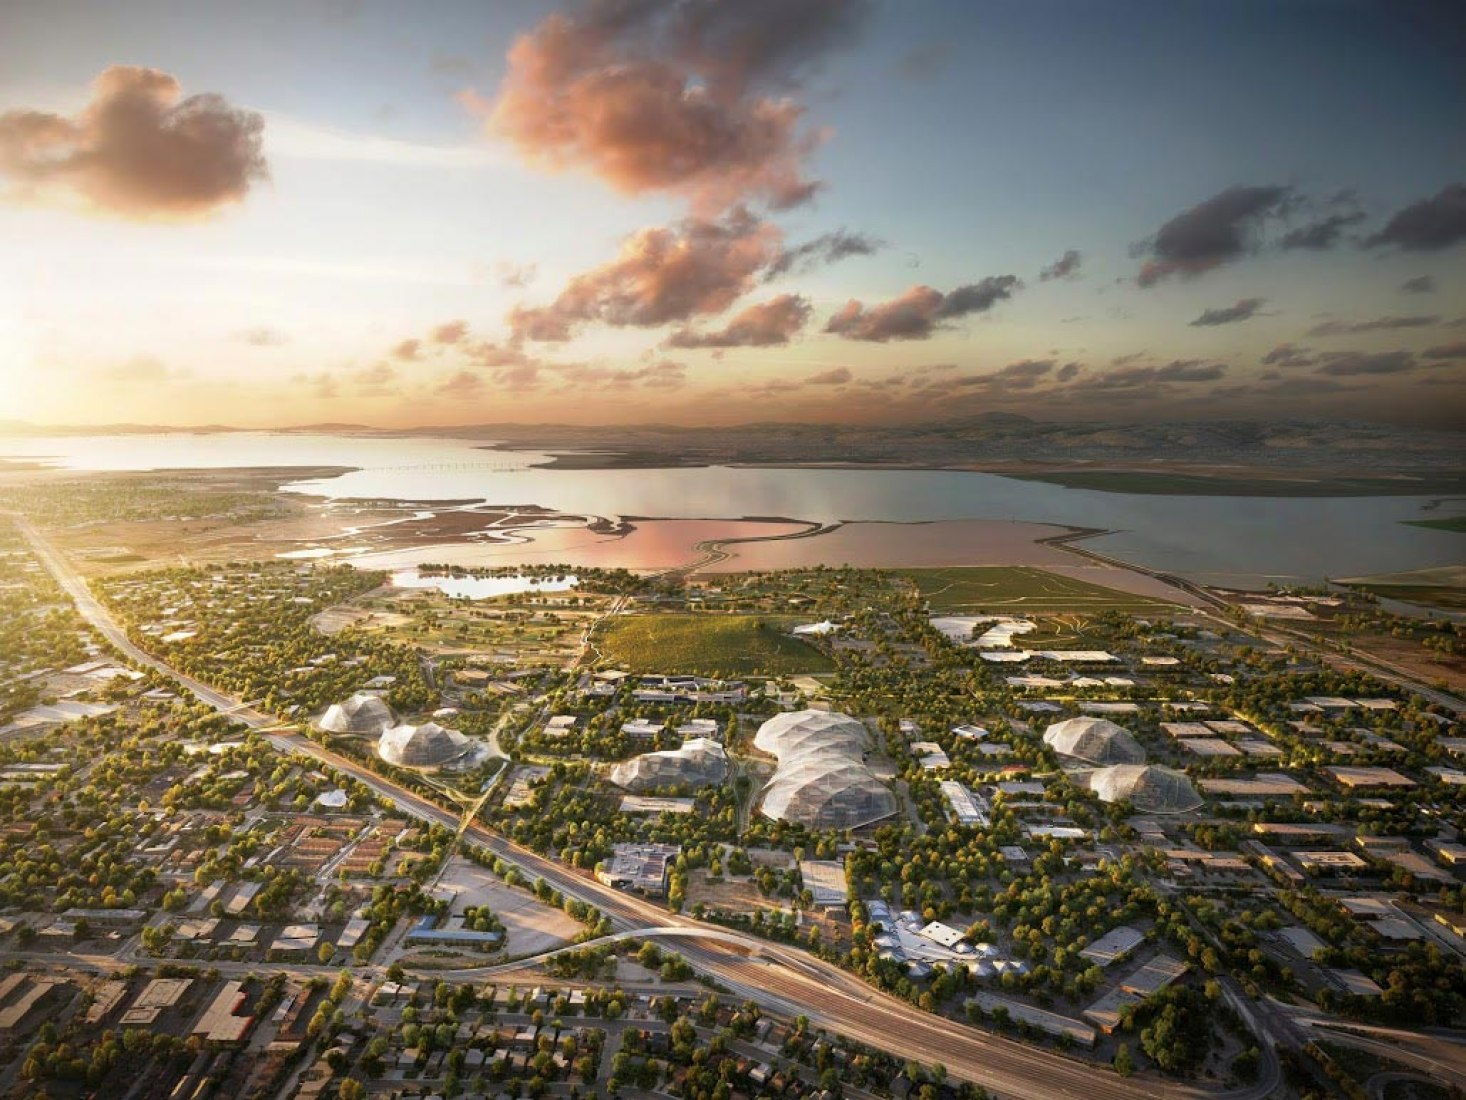 This bird's eye view shows Google's proposed new campus and its surroundings. By Heatherwick Studio and BIG.